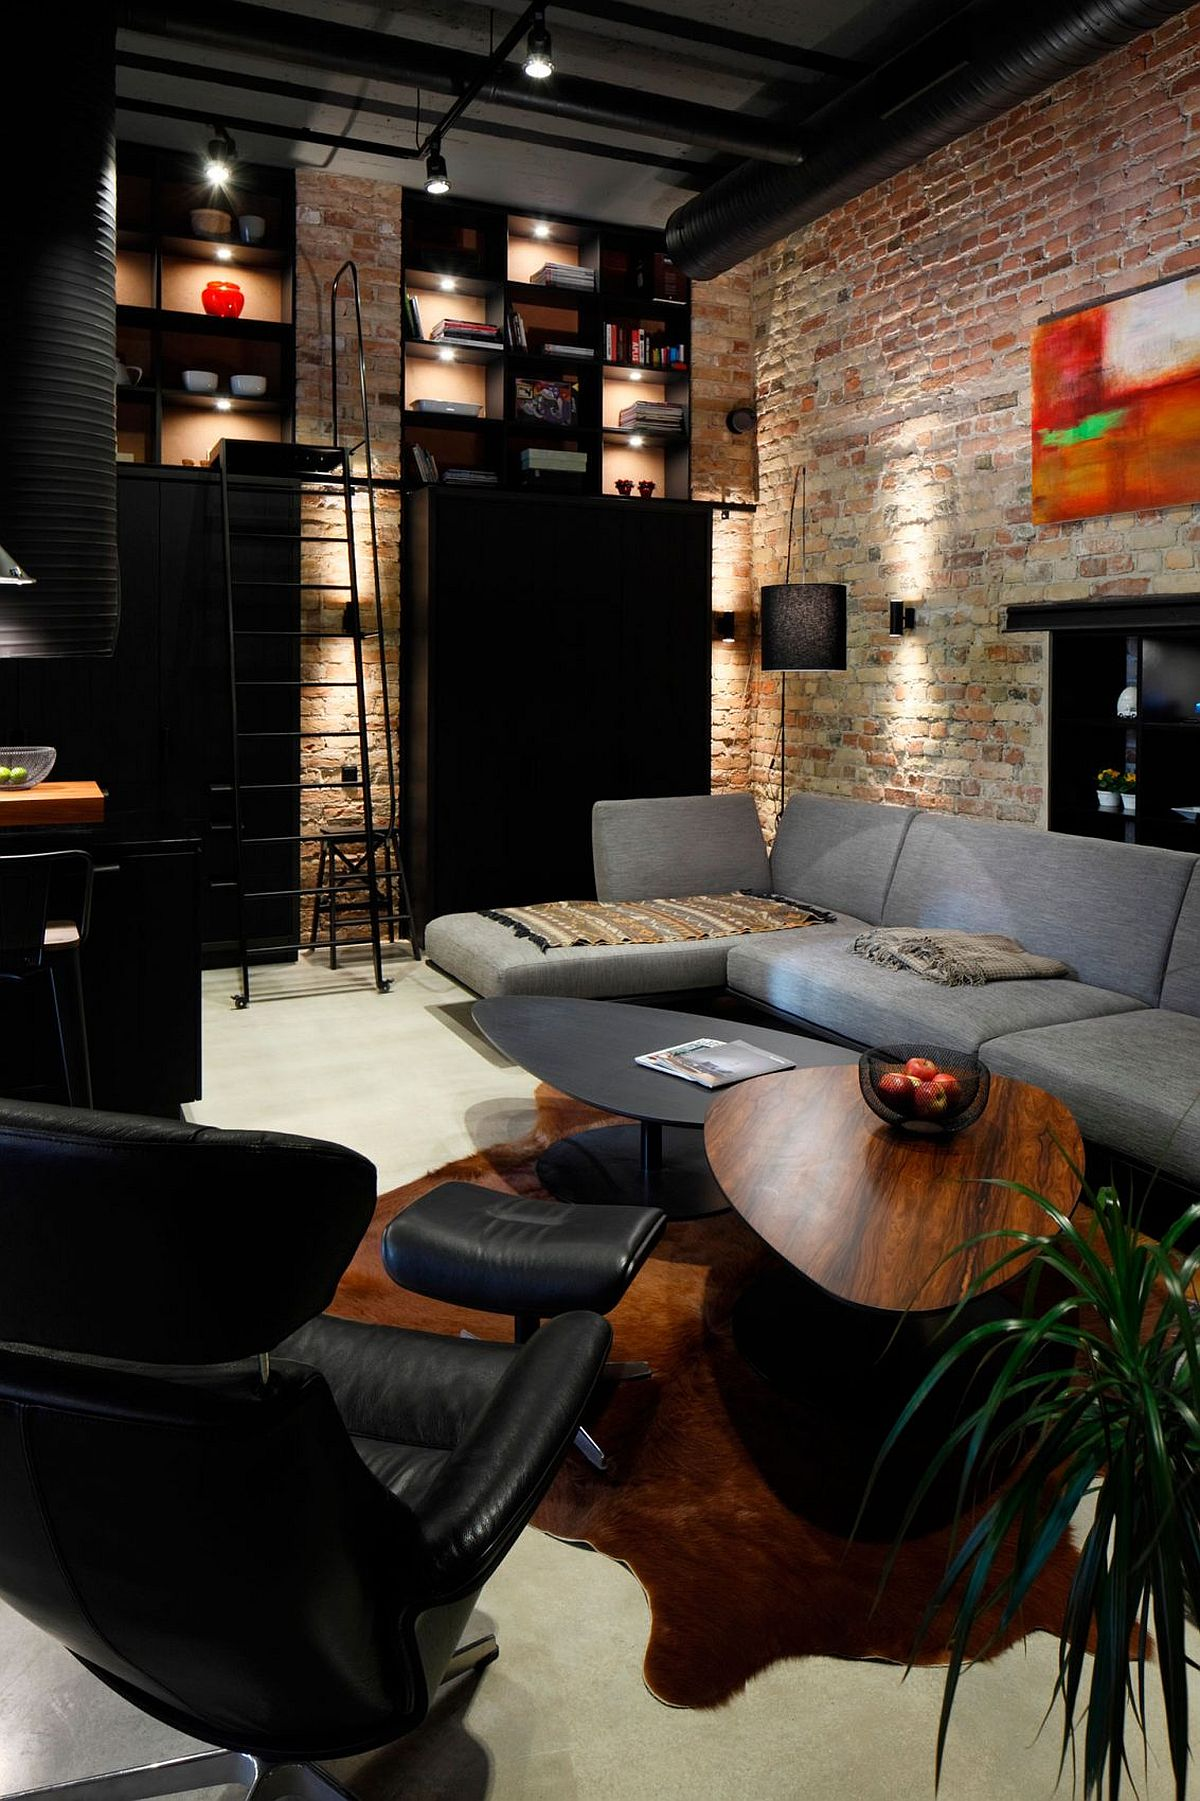 Smart shelving, open duct pipes and brick walls for the modern industrial living room